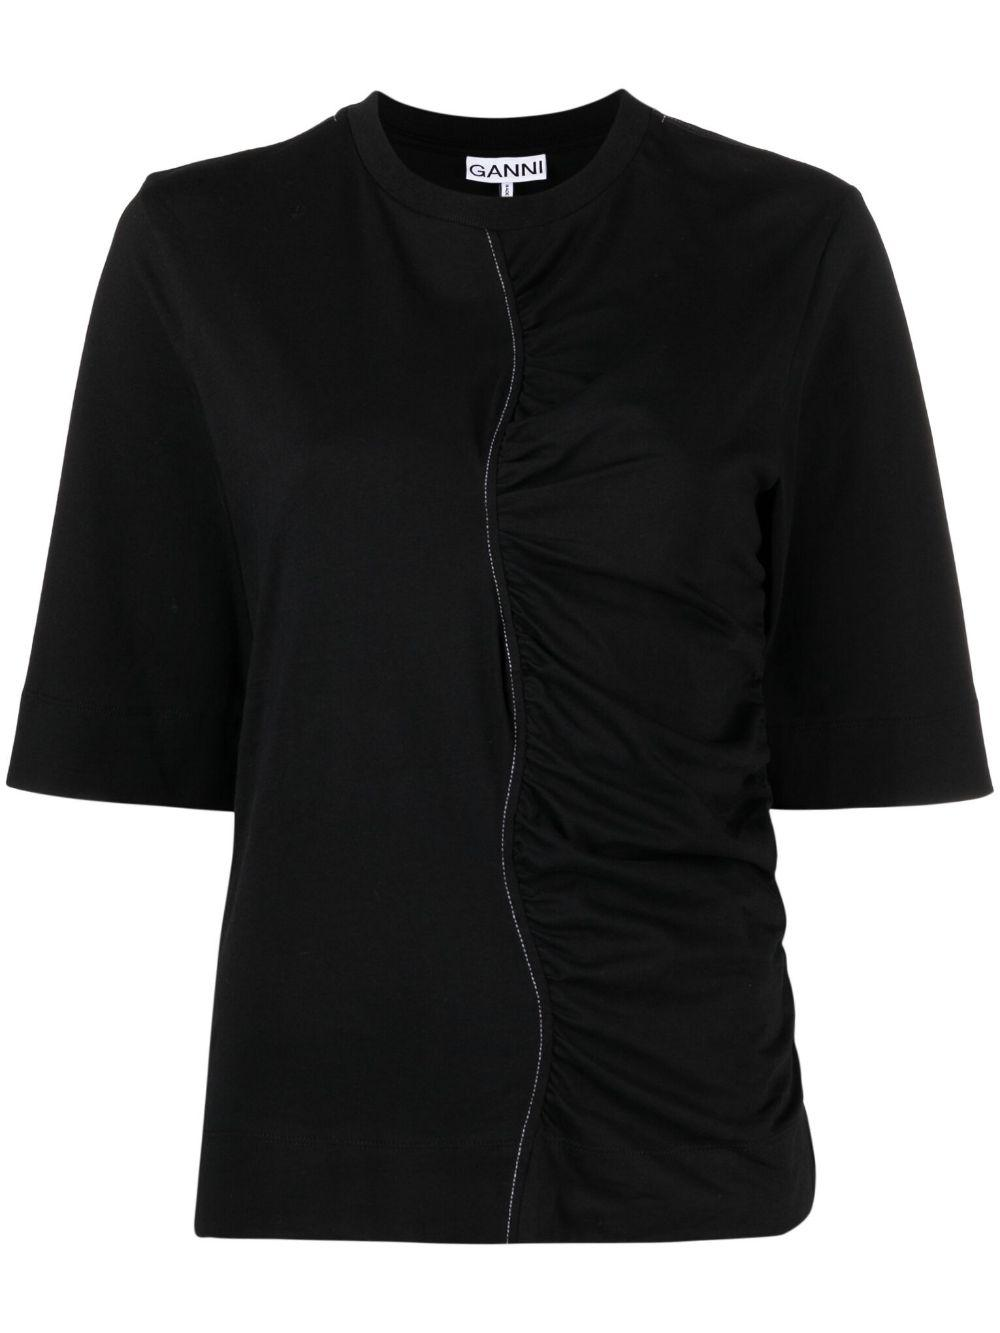 Cotton Jersey Half Ruched Tee Item # T2886